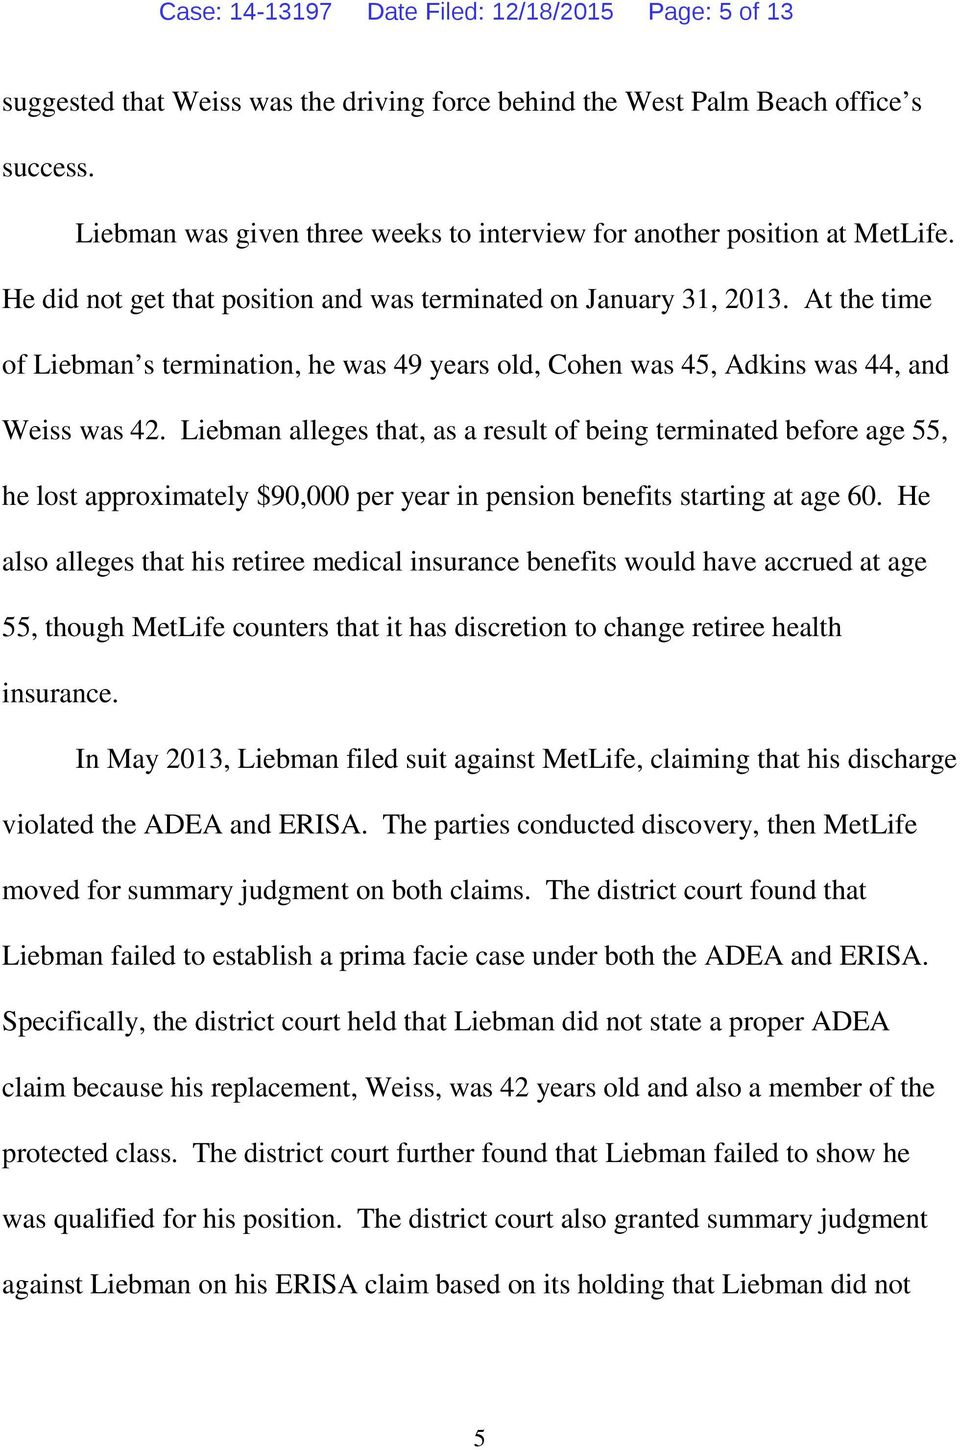 At the time of Liebman s termination, he was 49 years old, Cohen was 45, Adkins was 44, and Weiss was 42.